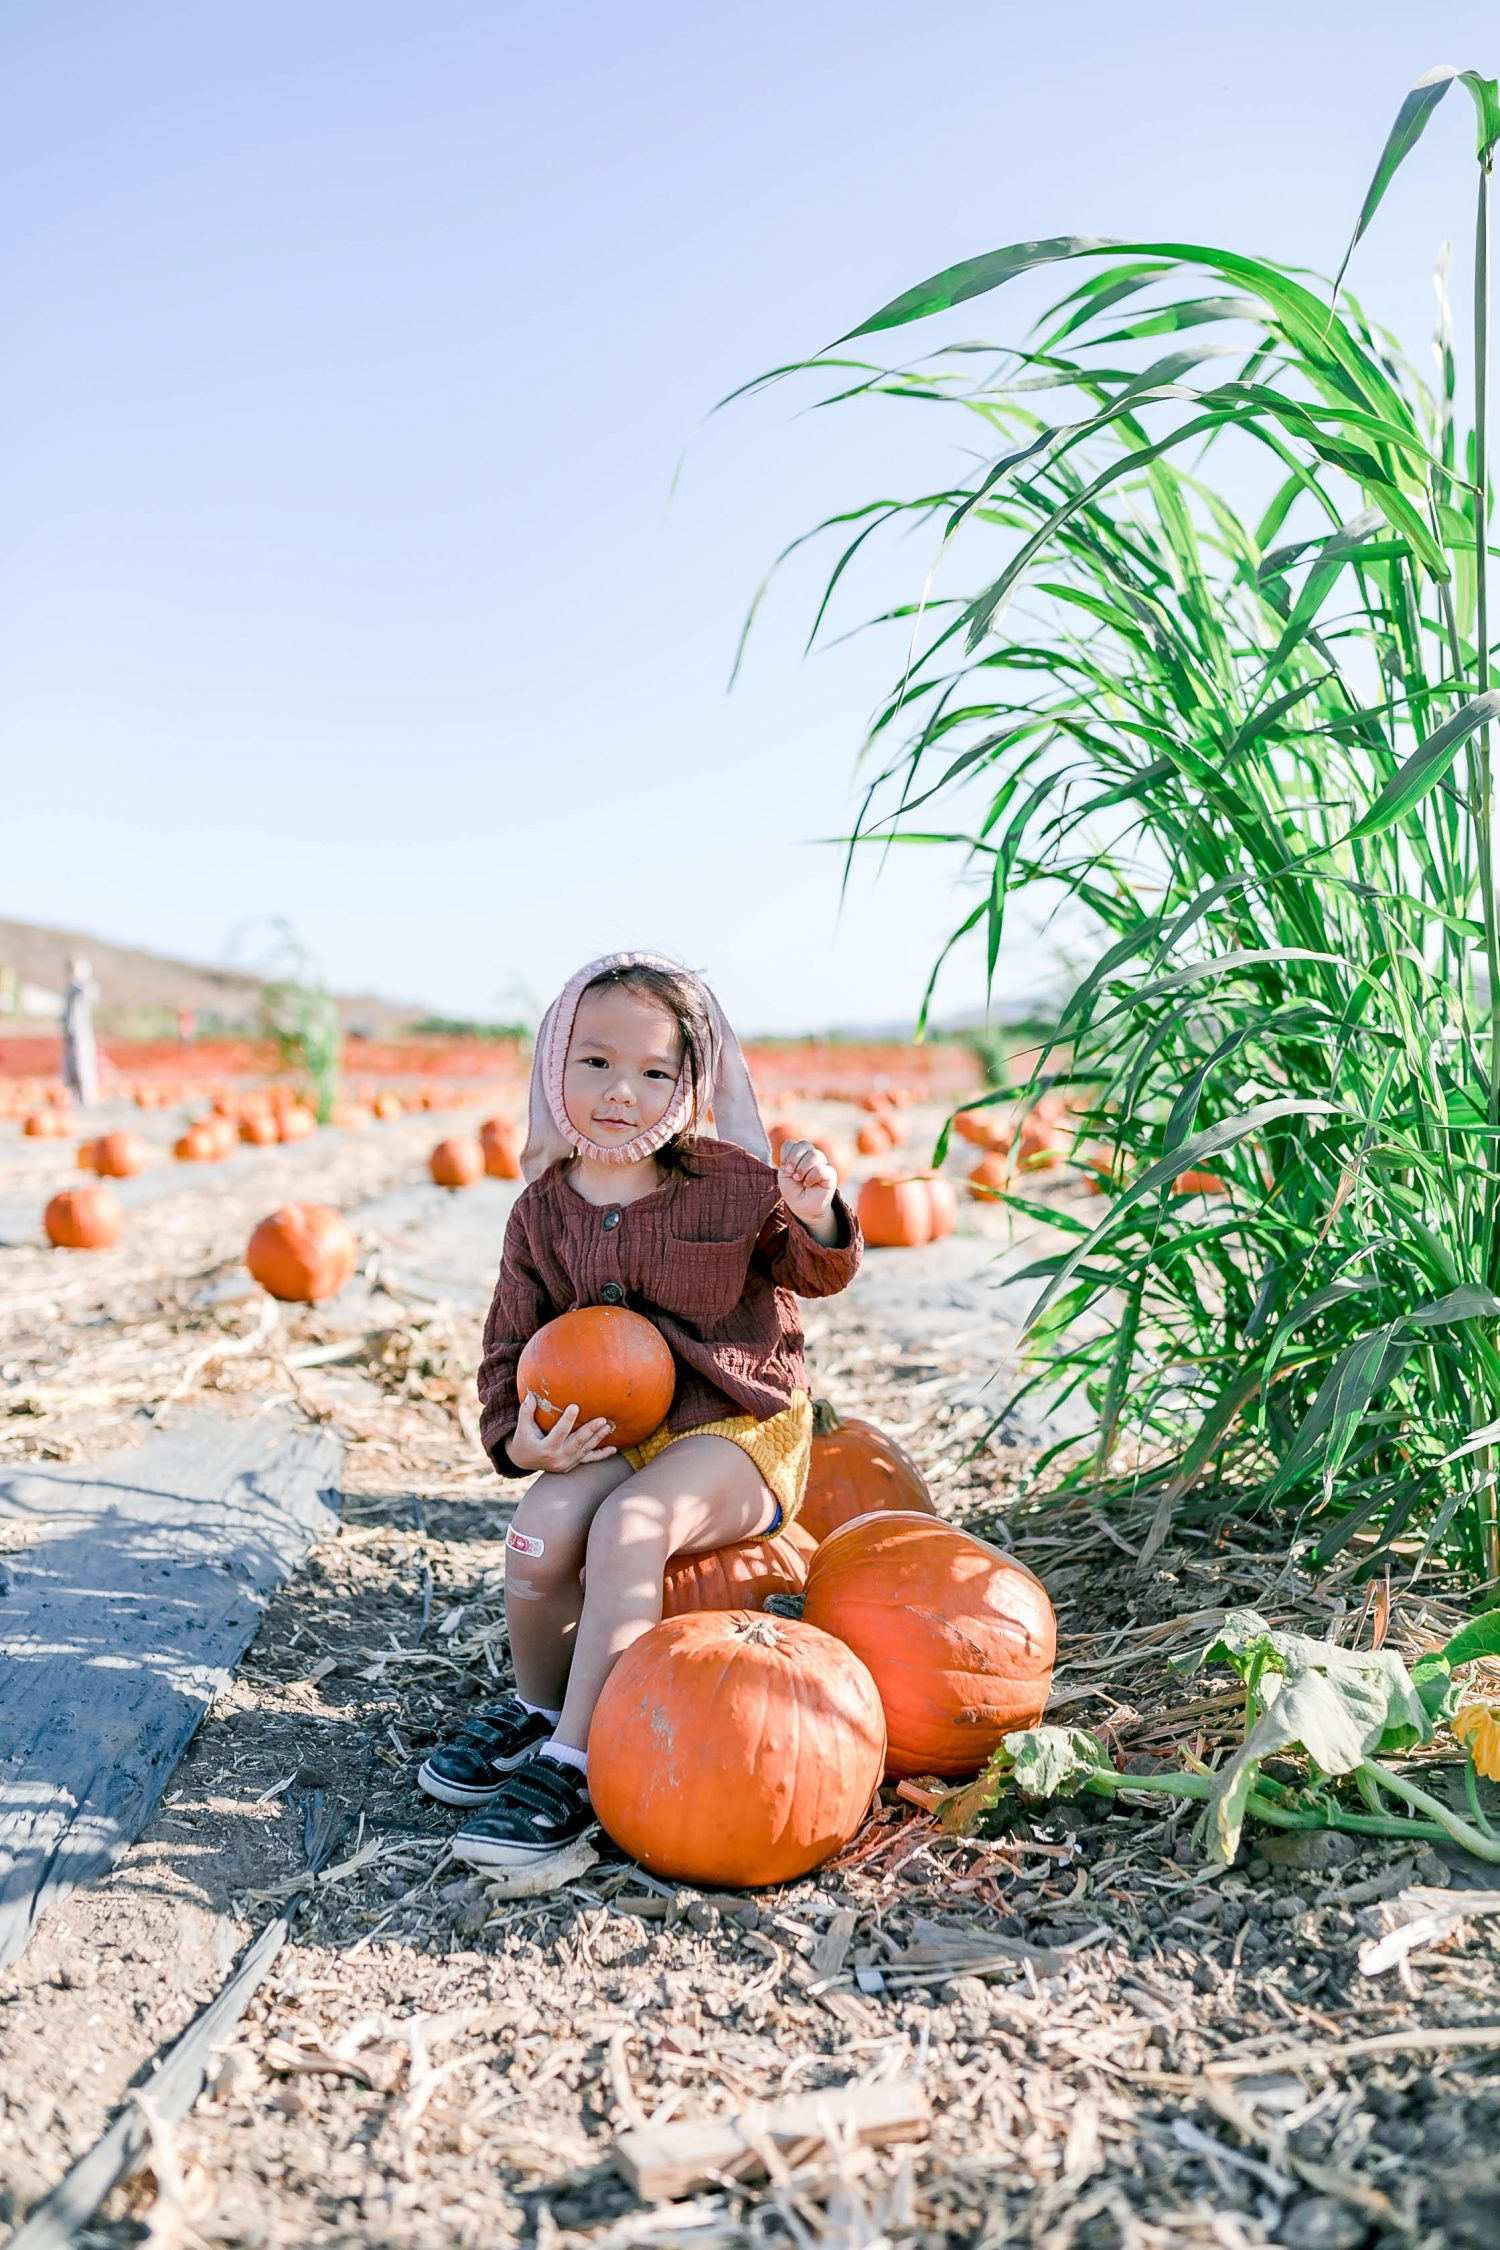 Fall Is Here! But, Is It Safe to Go Pumpkin Picking This Year?